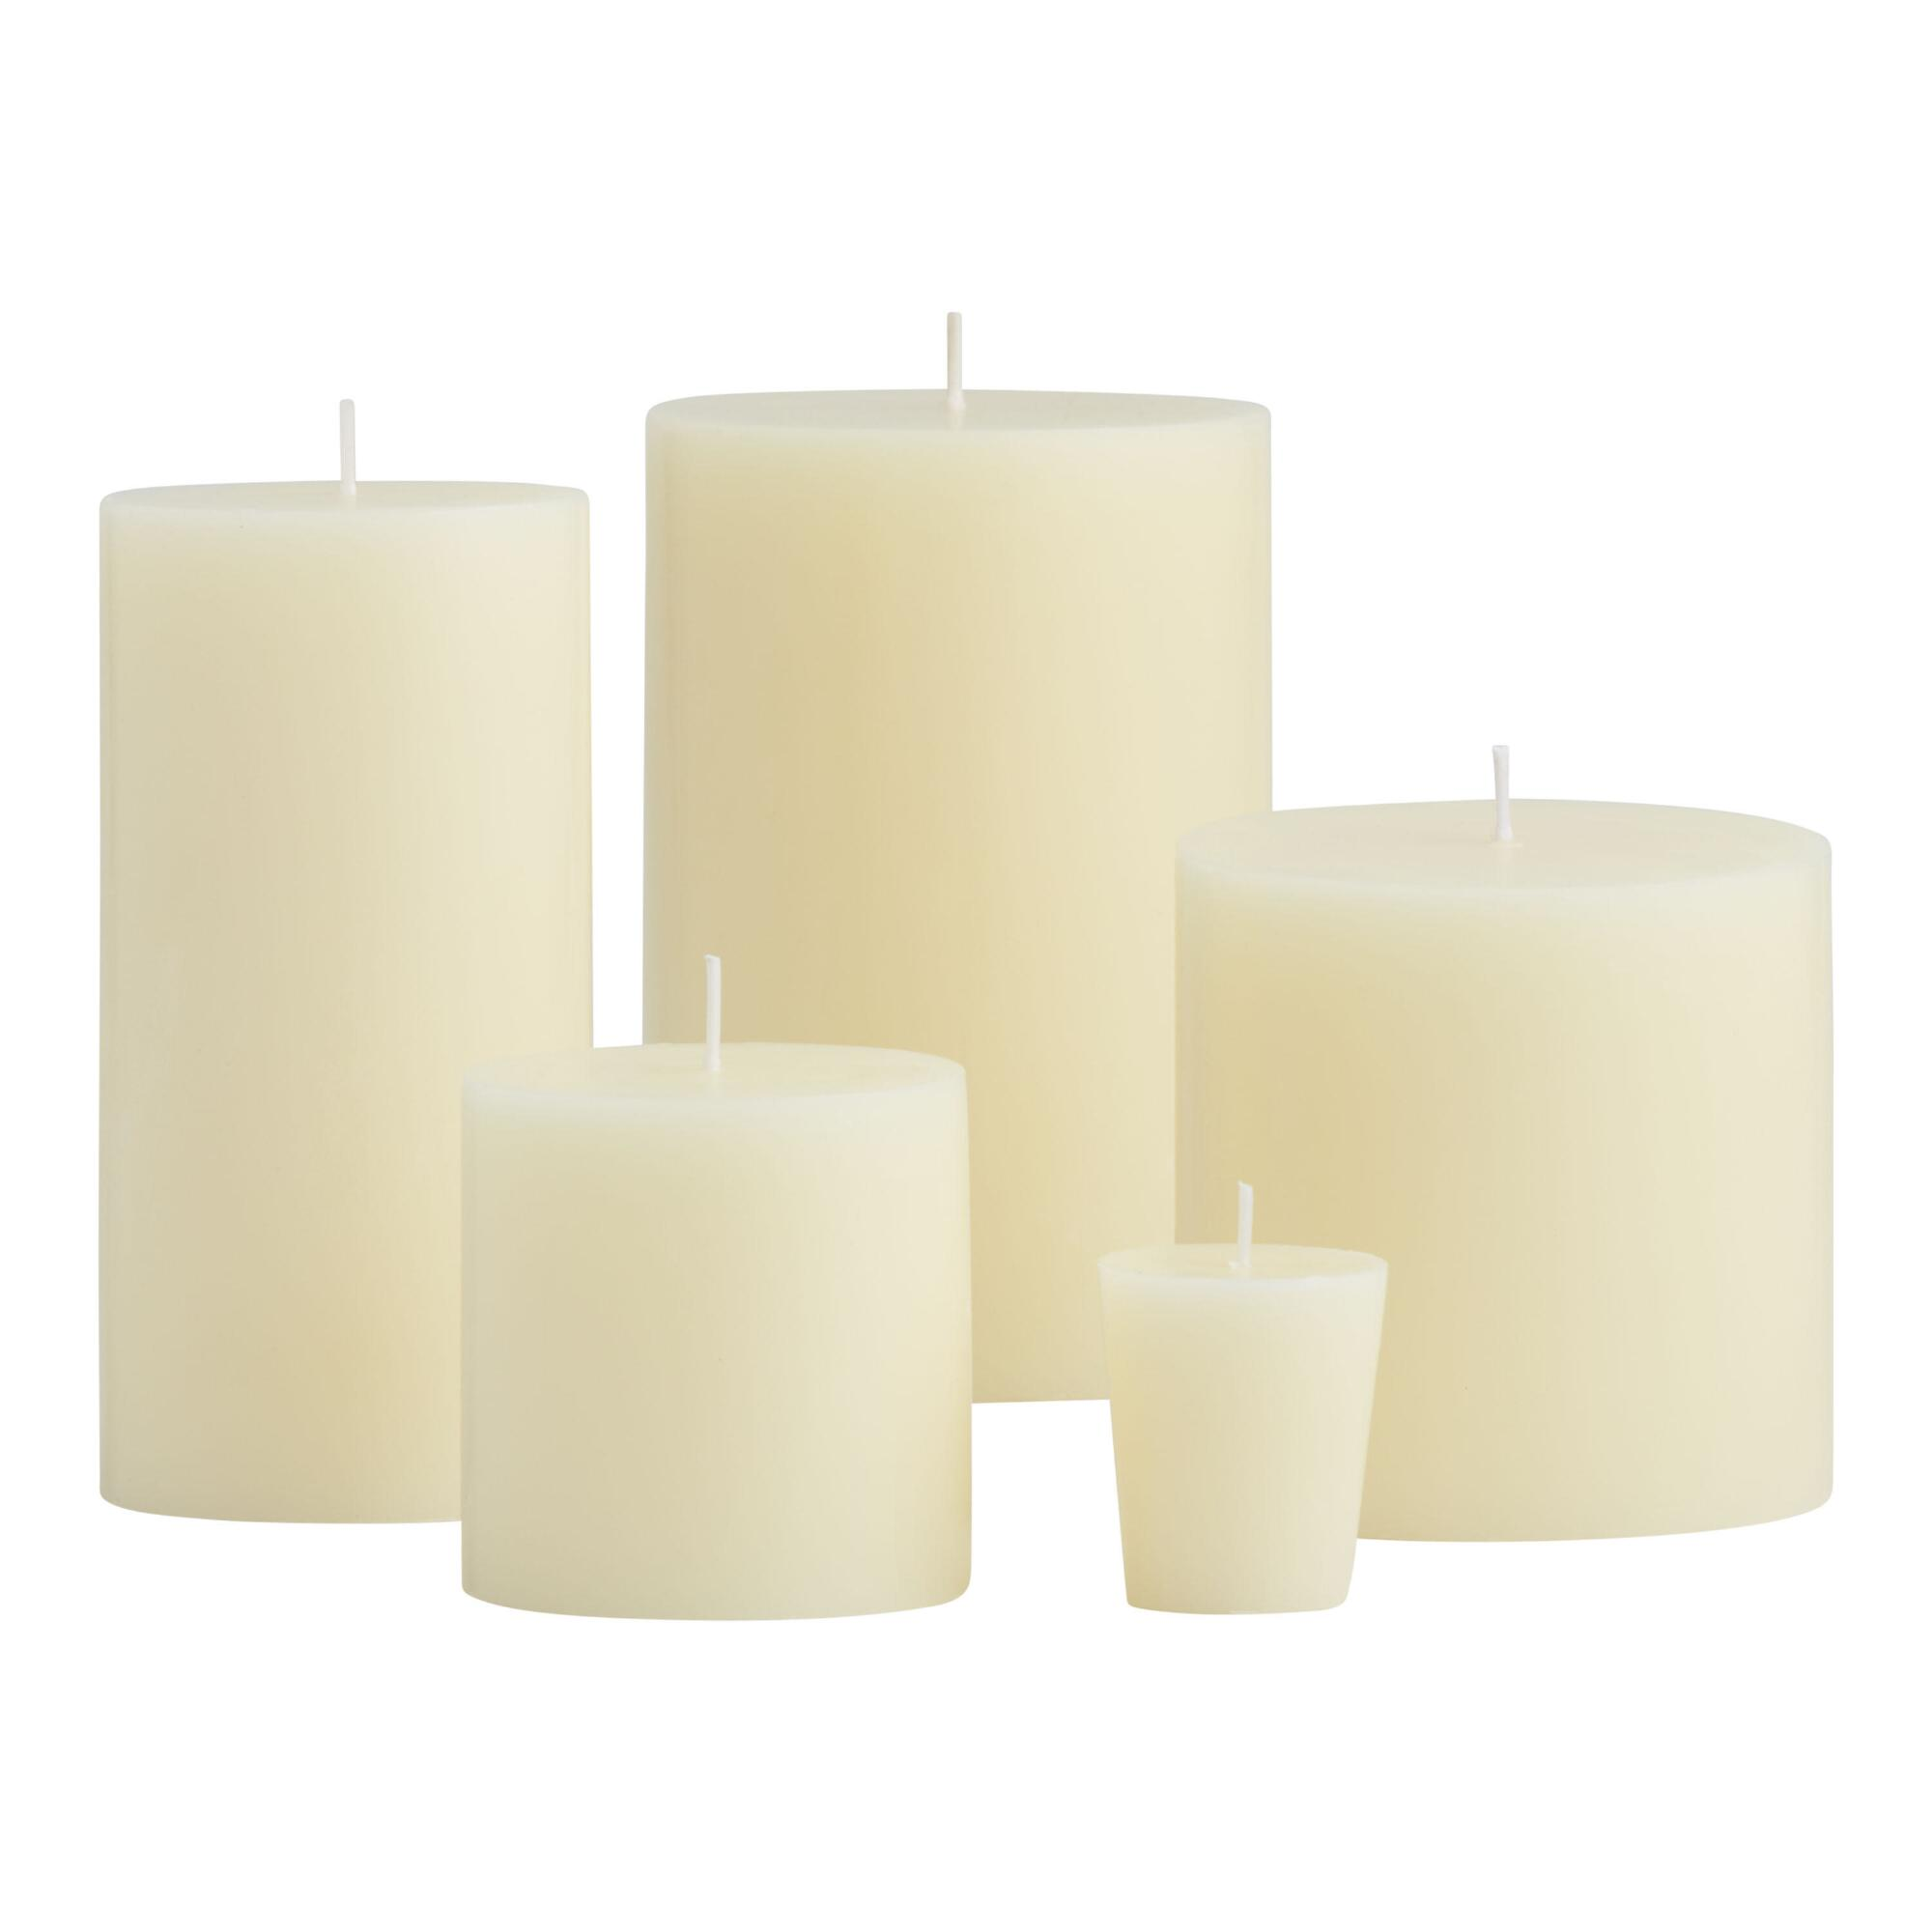 Our Unscented Candles are nothing to sniff at. Perfect for dinner parties, they're fragrance-free to allow your culinary skills to shine—aromatically speaking. Crisp, white hand-poured pillars are fashioned of pure paraffin wax and are available in assorted sizes/5(35).